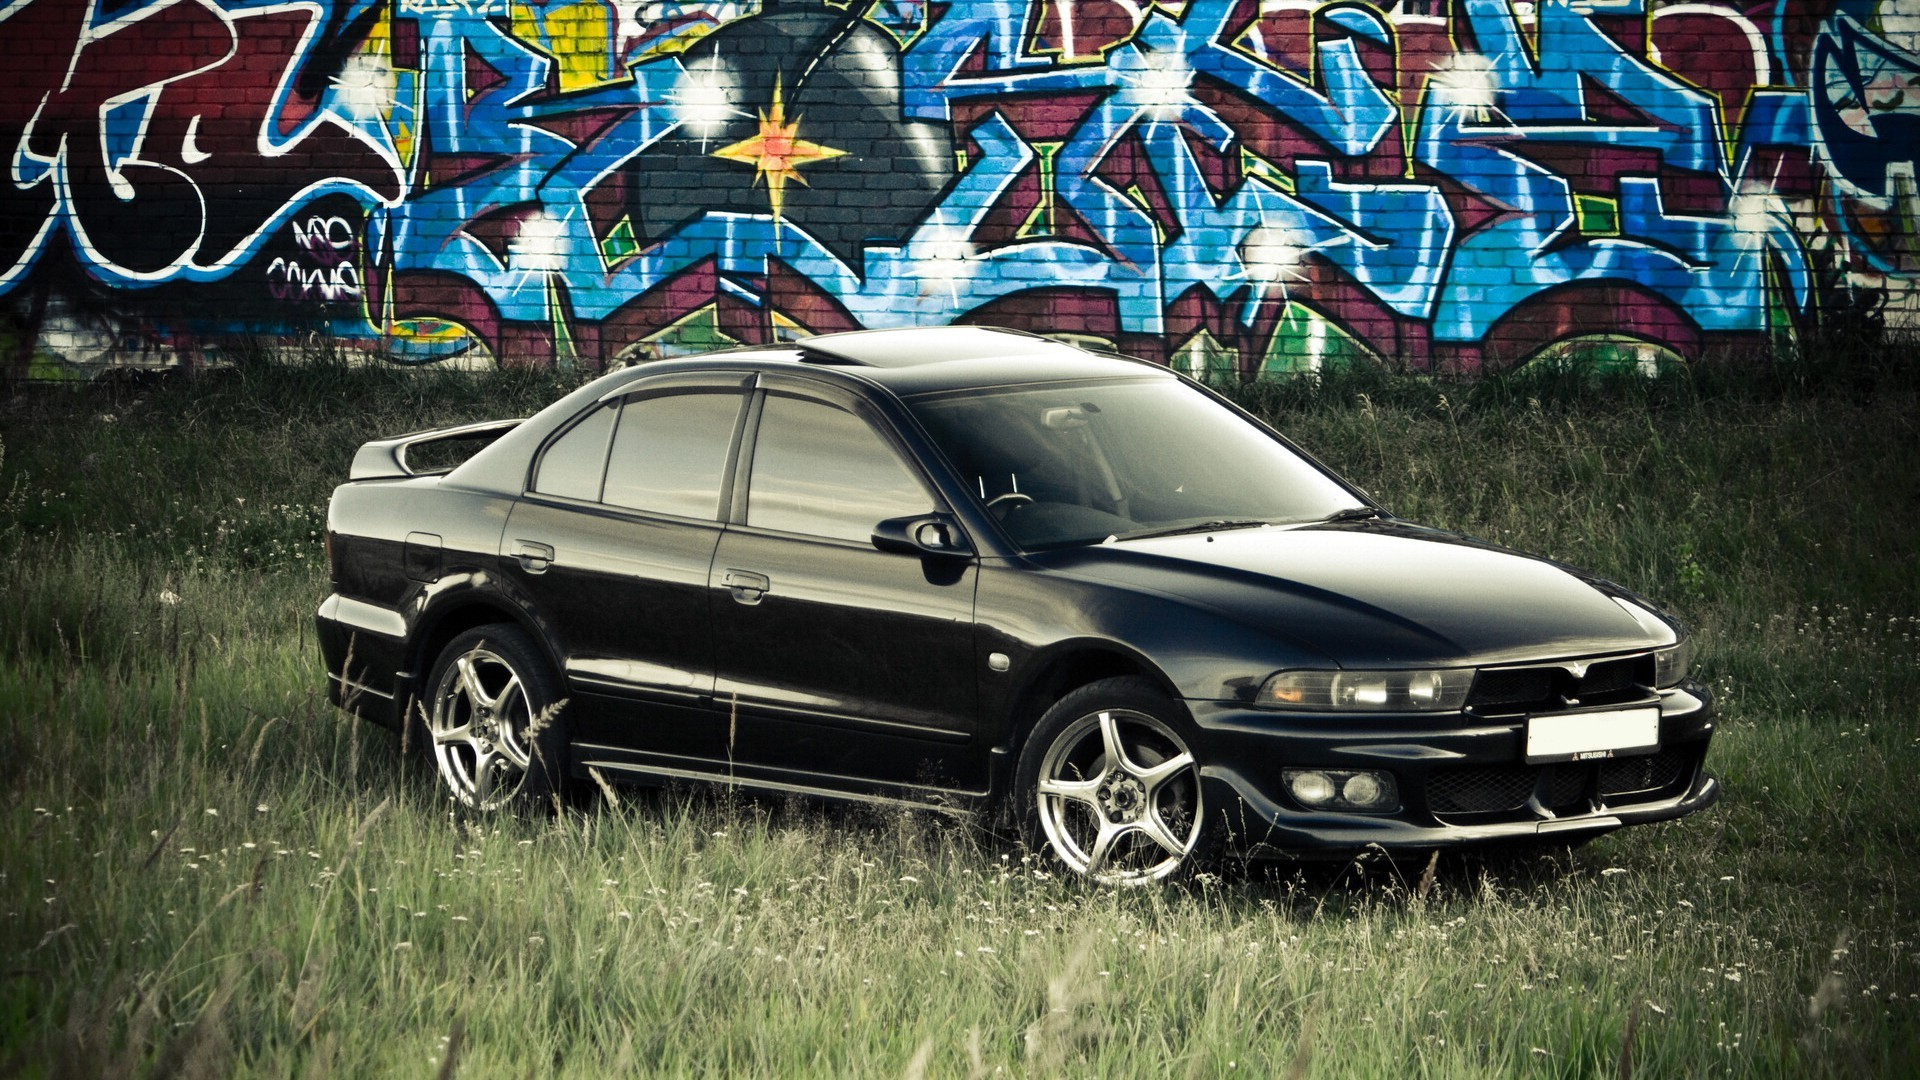 cars vehicles Mitsubishi Galant HD Wallpaper